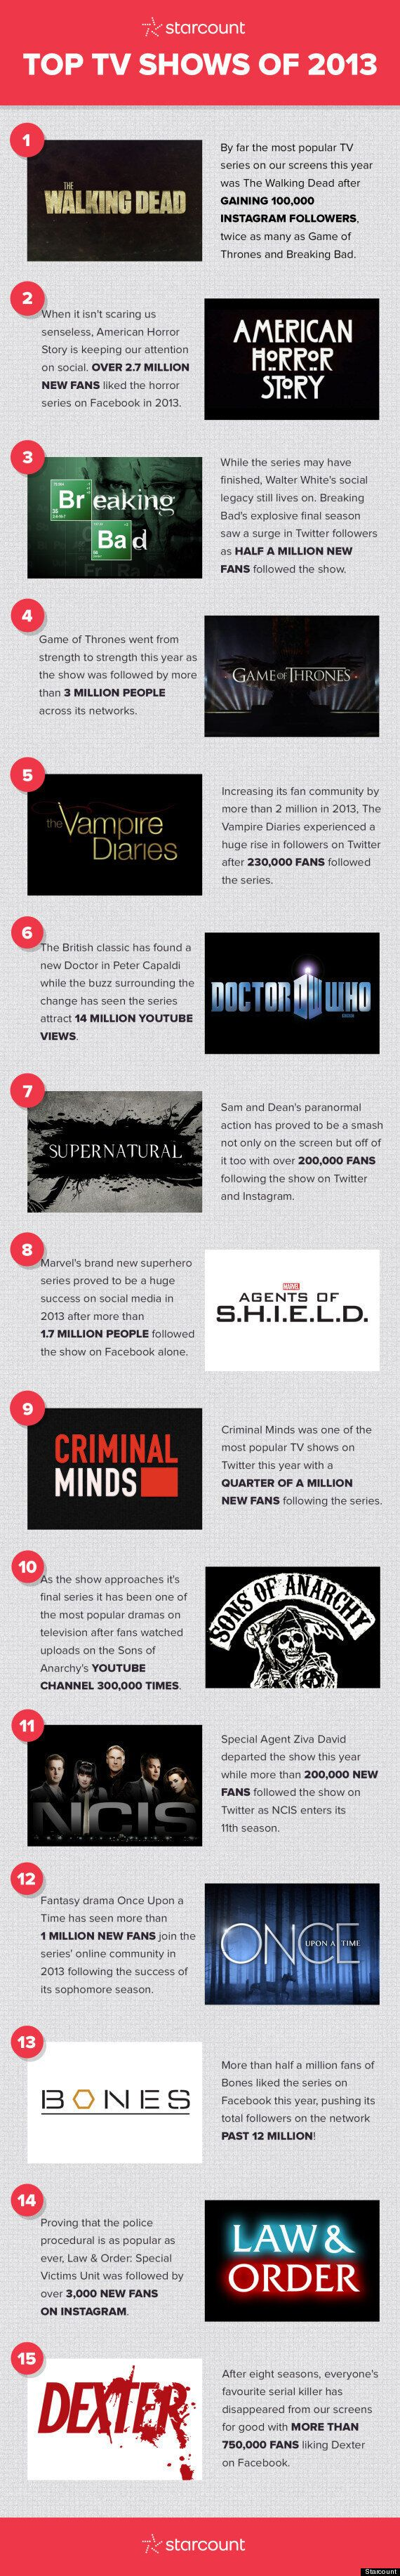 What Was The Most Popular TV Show Of 2013, According To Social